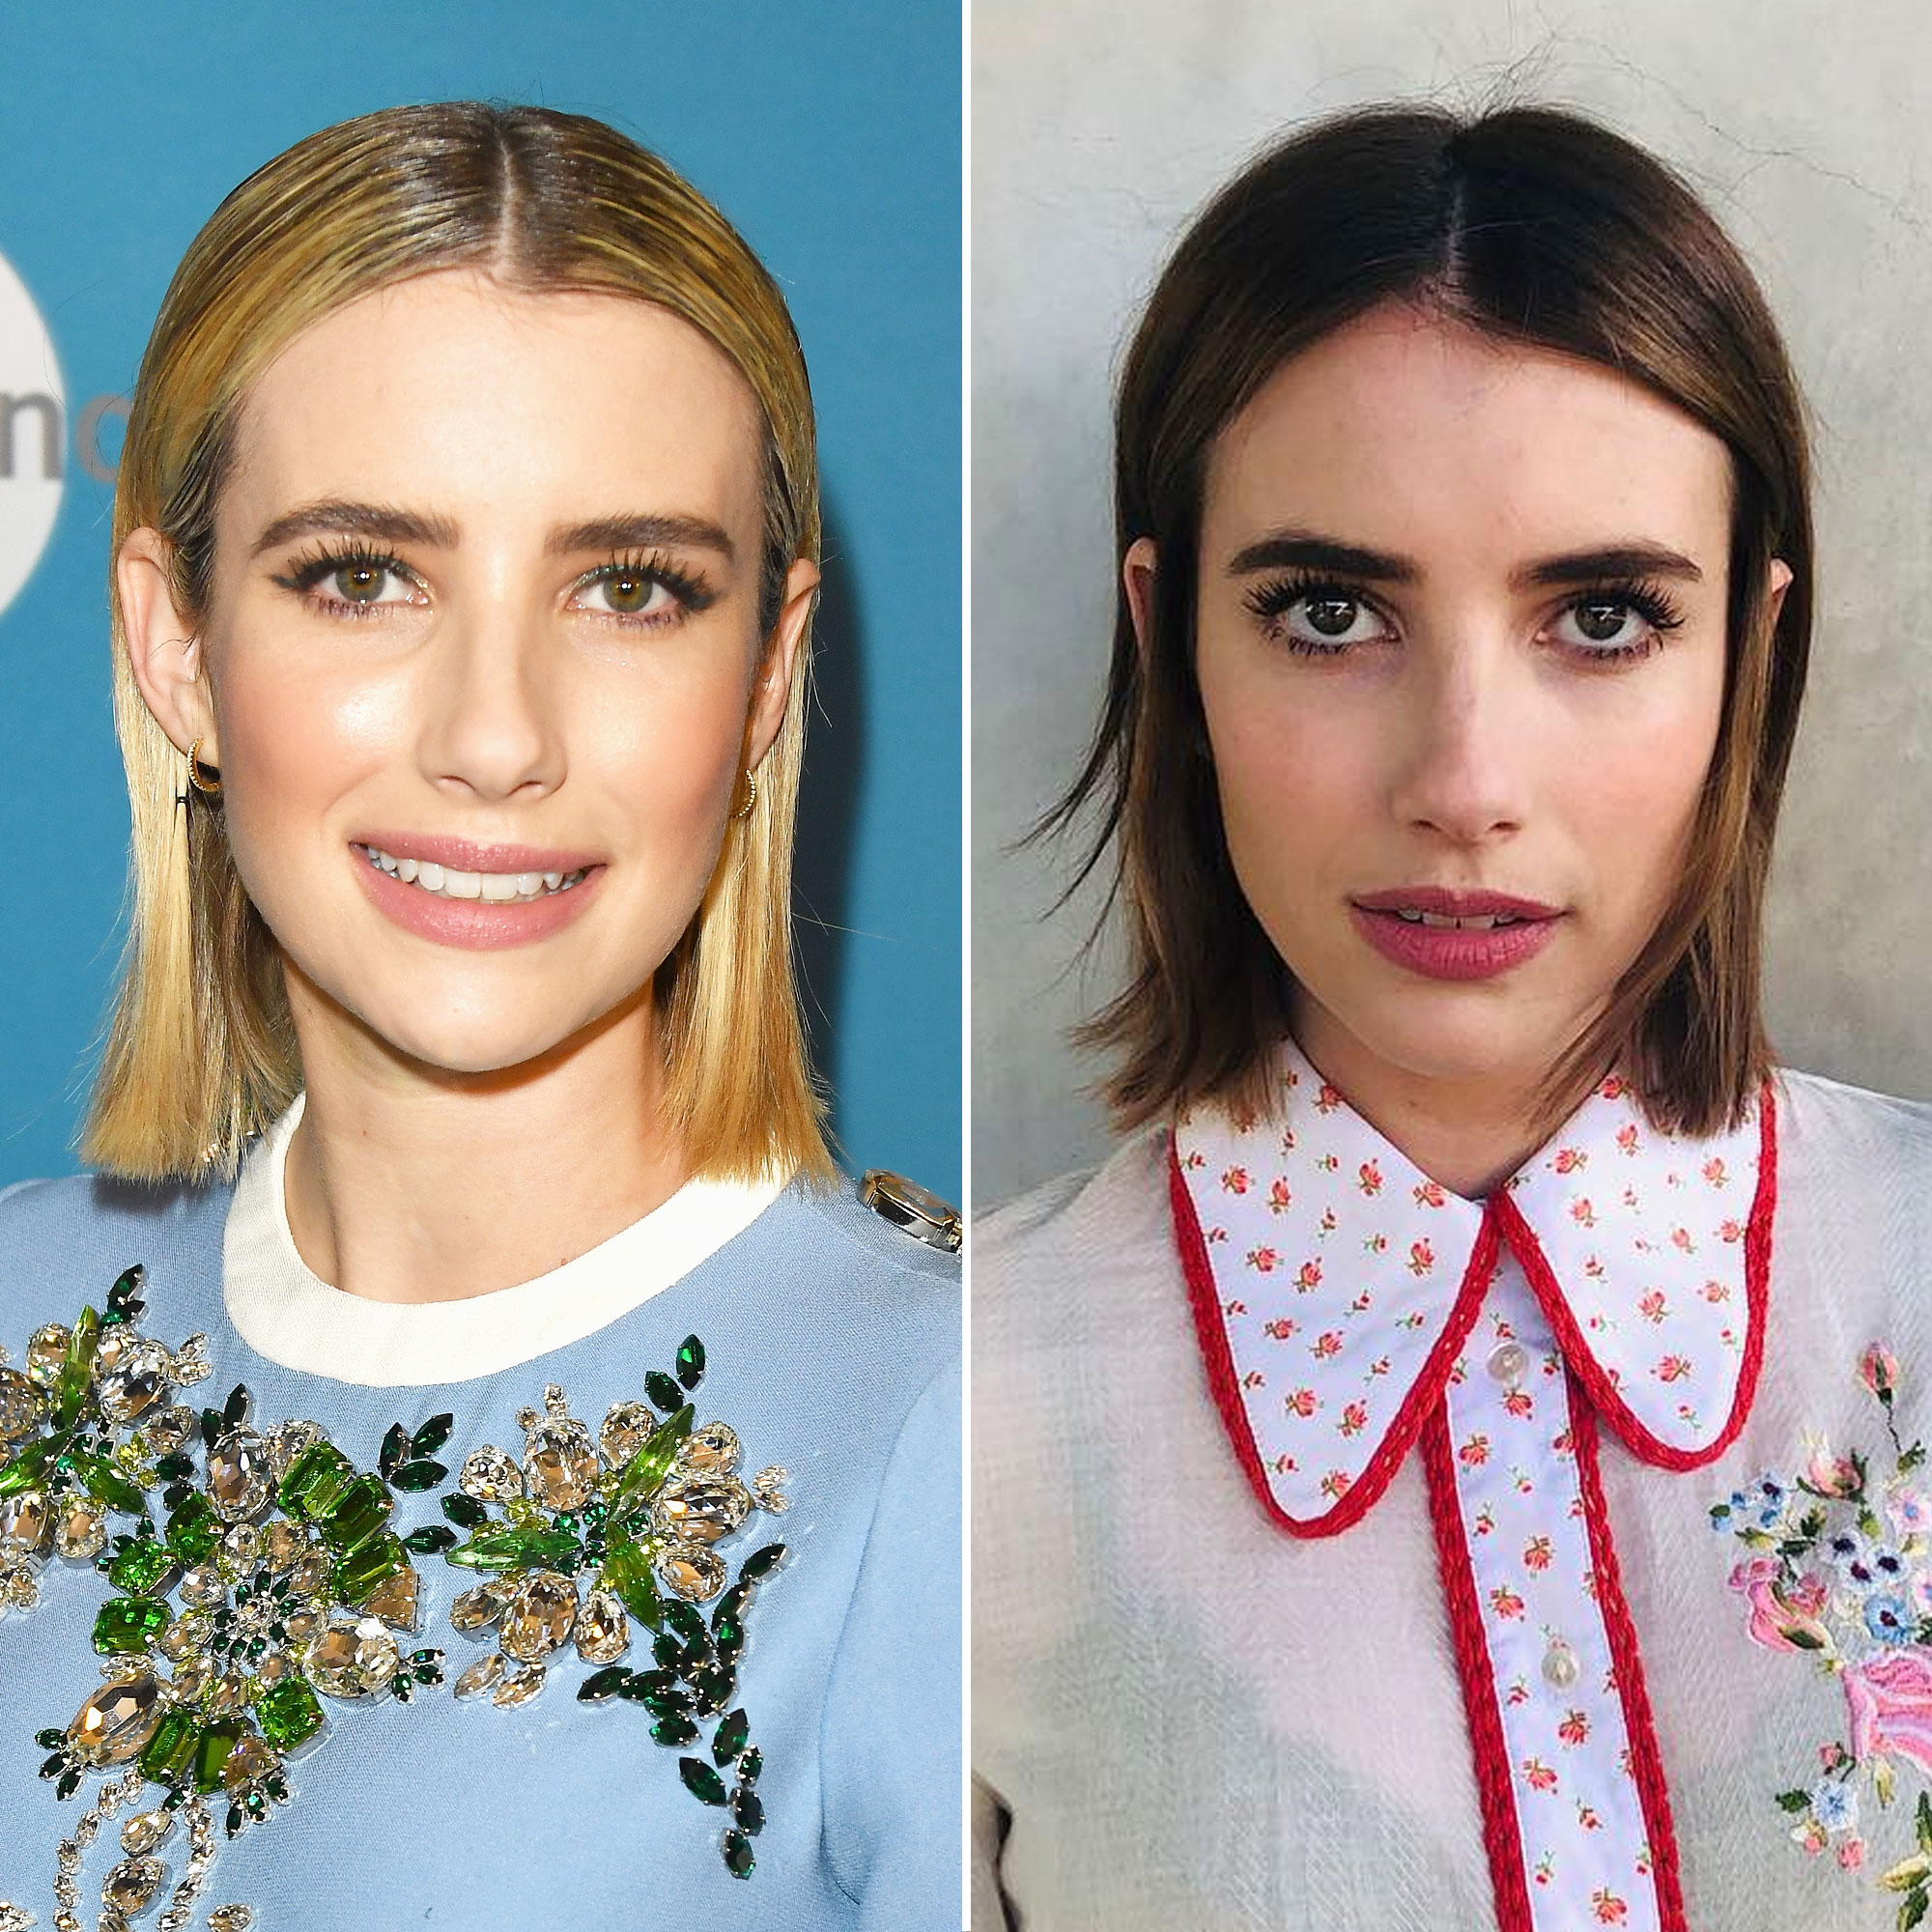 Emma Roberts Just Went Brunette Plus Other 2019 Celeb Hair Changes - Previously a dirty blonde, the American Horror Story actress debuted a classic brunette shade on February 19, courtesy of celebrity hairstylist Nikki Lee.